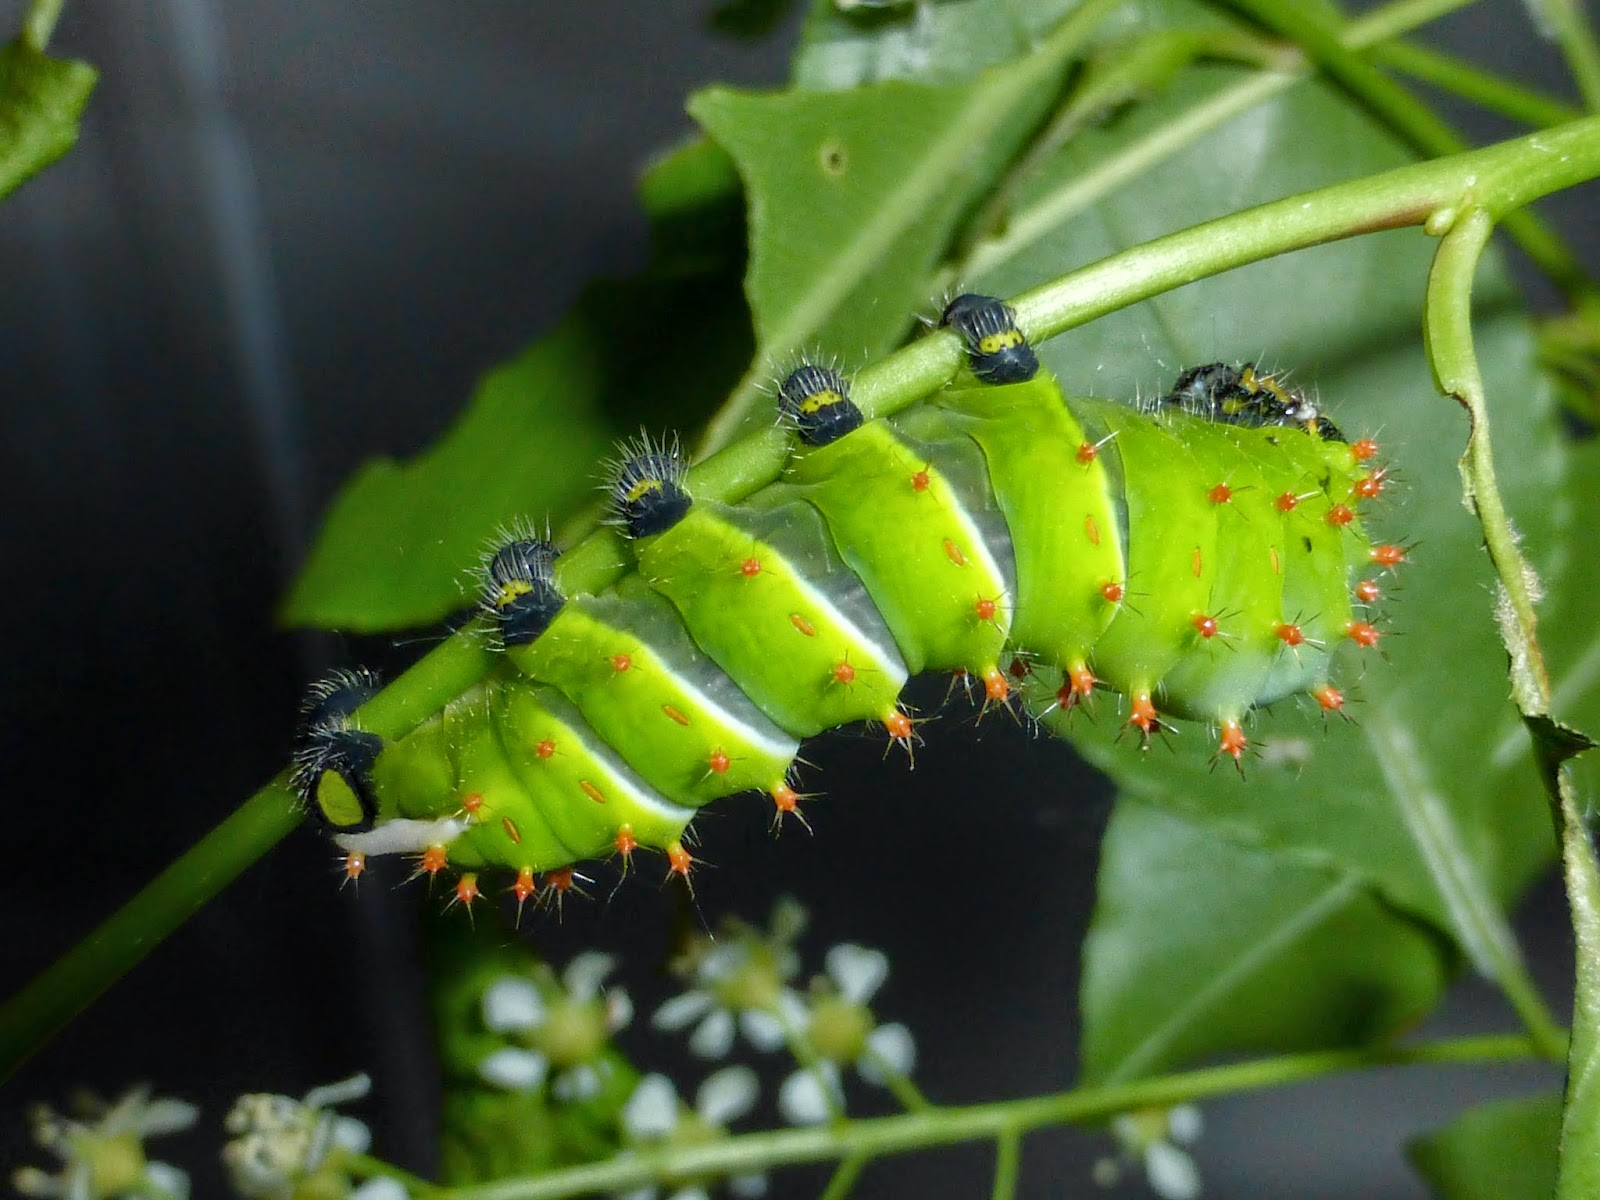 Rothschildia caterpillars